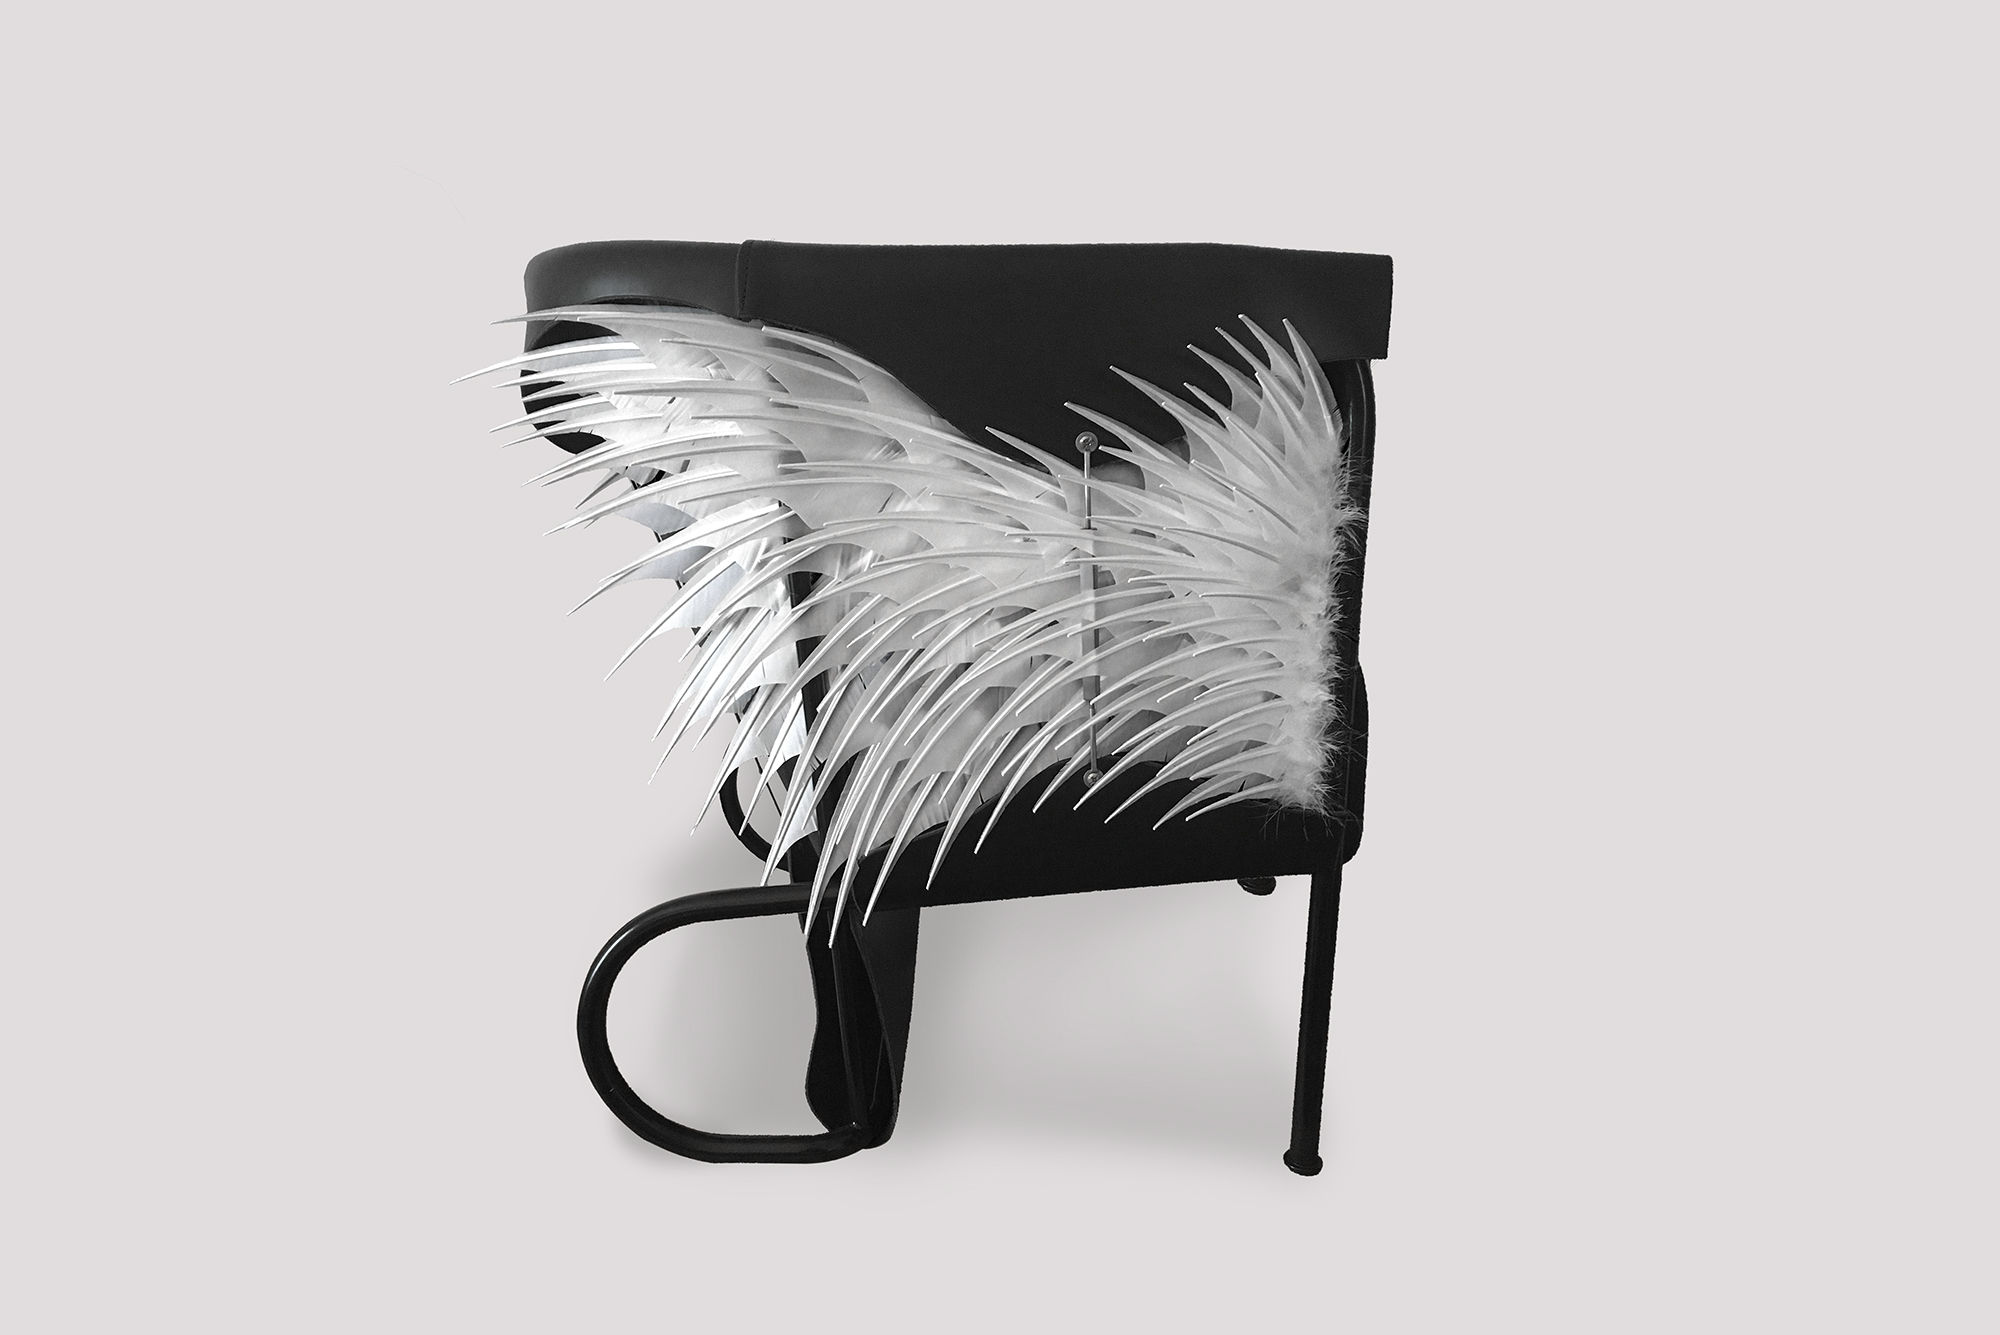 """Club Lounge Chair - Accoutre N.2 - <p>In the first edition of the 'Club Chair' (2016) the designer Glen Baghurst drew inspiration from high fashion and English saddlery and applied this to create his leather draped armchair.</p> <p>This second edition is a limited release and is designed and produced in collaboration with french Plumassier (feather artisan) Maxime Leroy. Leroy specialises in contemporary feather work and has executed pieces of Haute Couture fashion for Chanel, Givenchy, Jean Paul Gaultier and Louis Vuitton.</p> <p>In this particular case the feathers used are sourced from farmed birds. We recycled """"the waste"""" of the food industry.</p>  